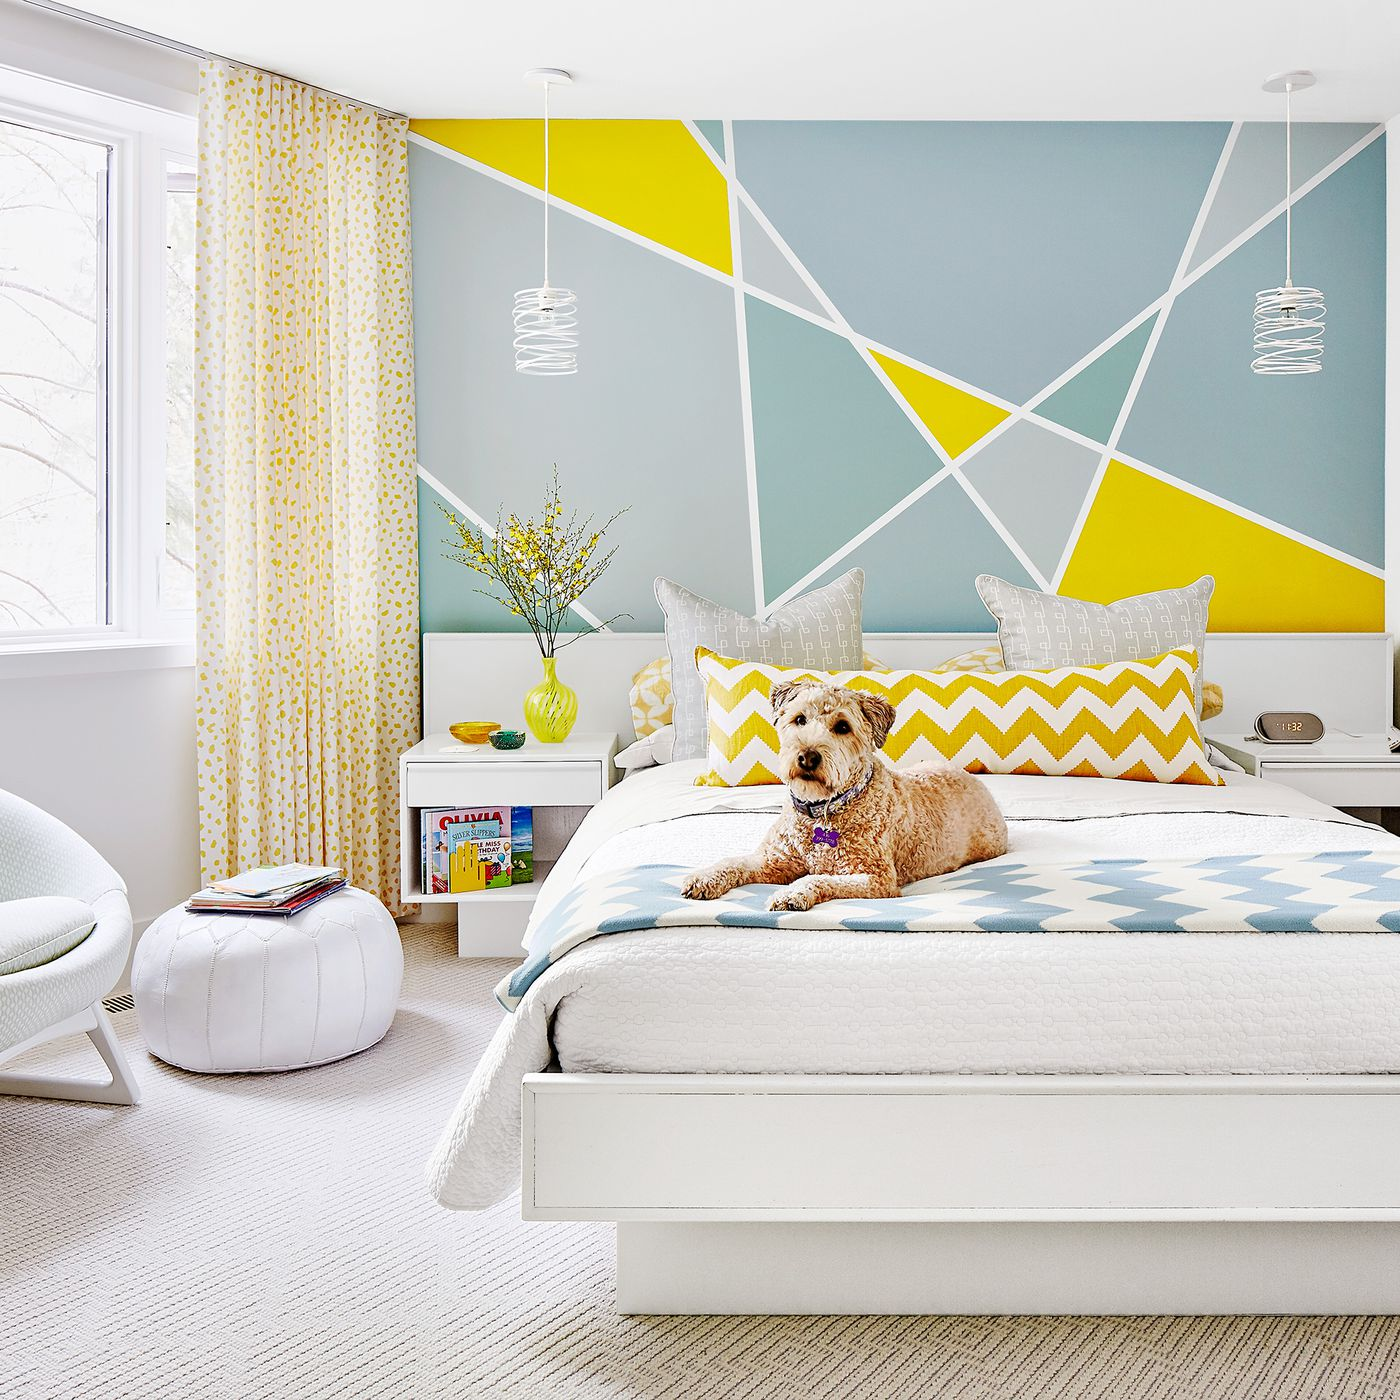 Paint A Simple Geometric Pattern On Your Bedroom Wall This Old House